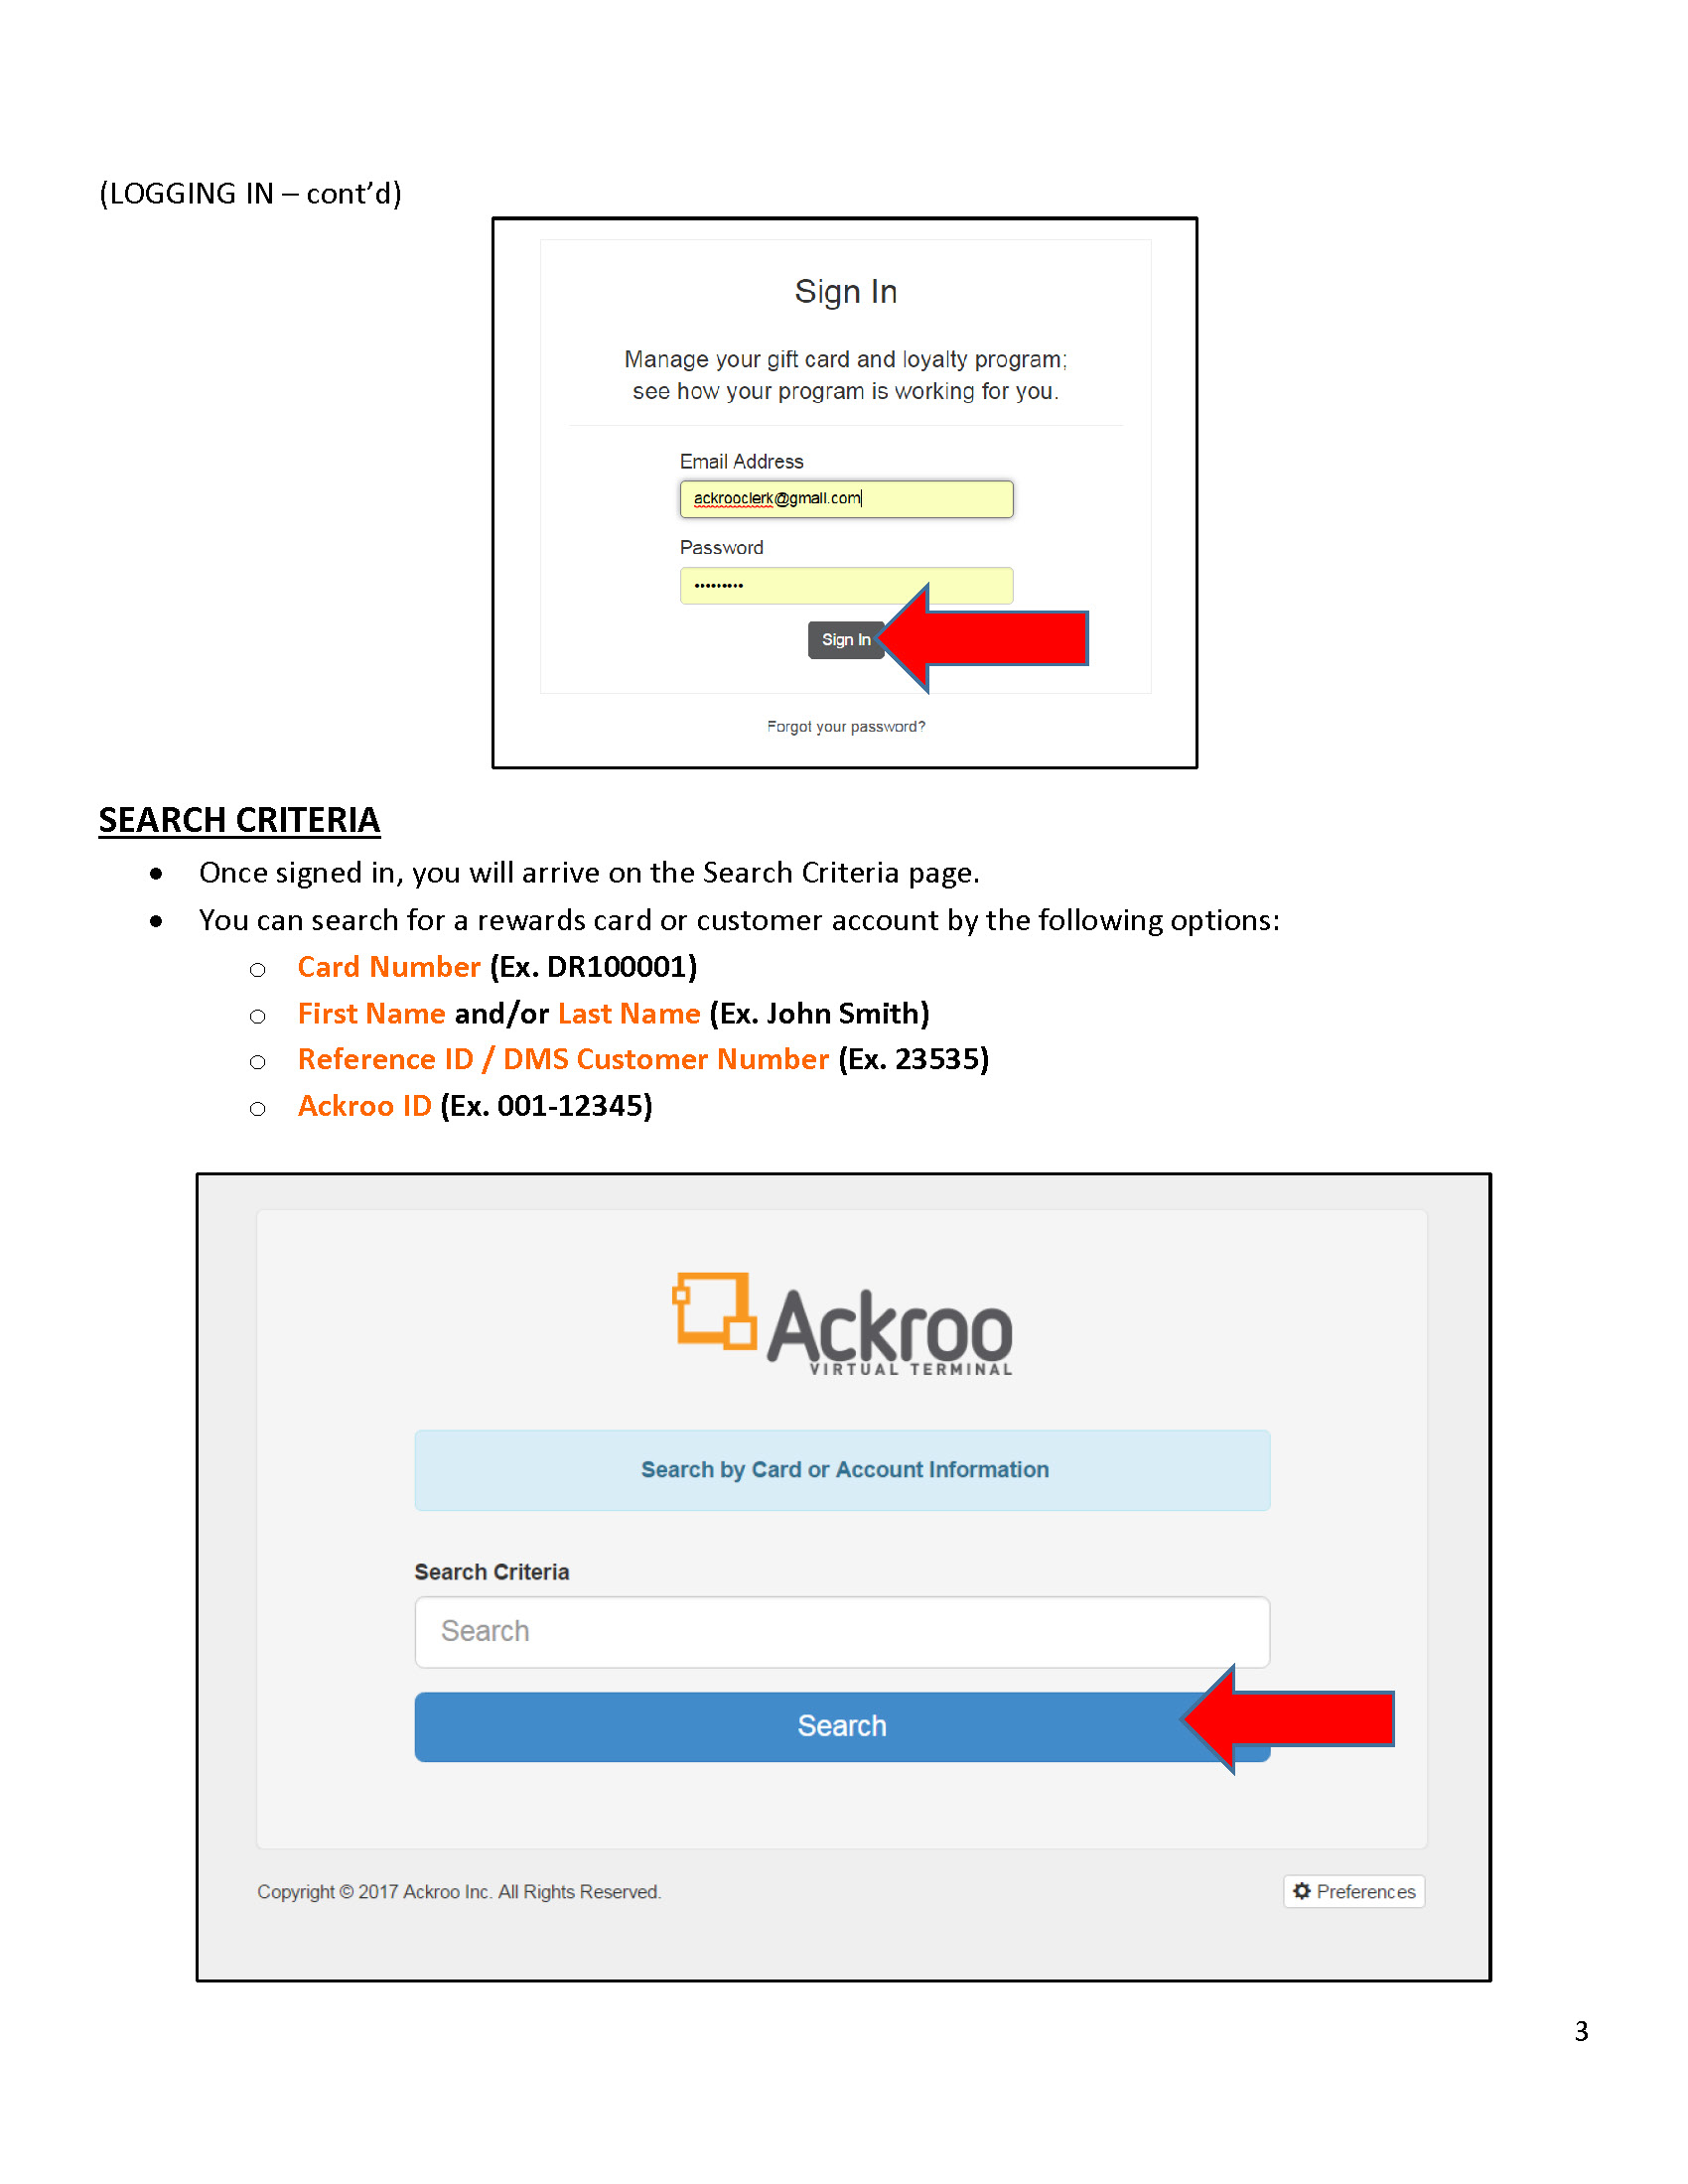 Ackroo_Automotive_-_Virtual_Terminal_Training__for_Dealerships__Page_04.jpg